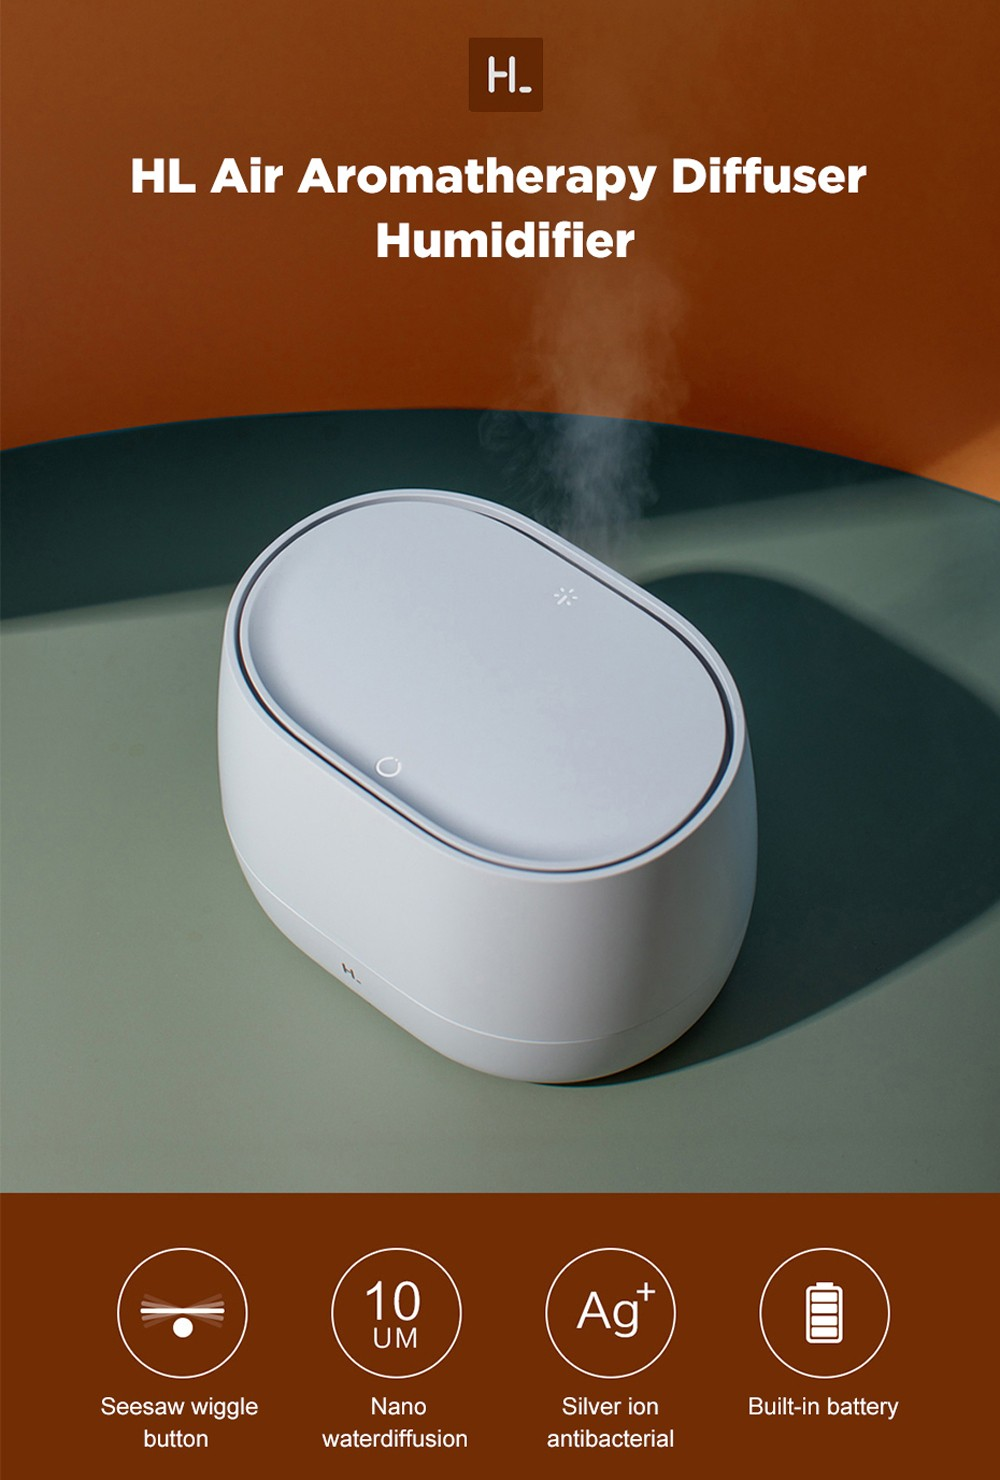 HL Aroma Diffuser Pro (without Essential Oil) from Youpin - White